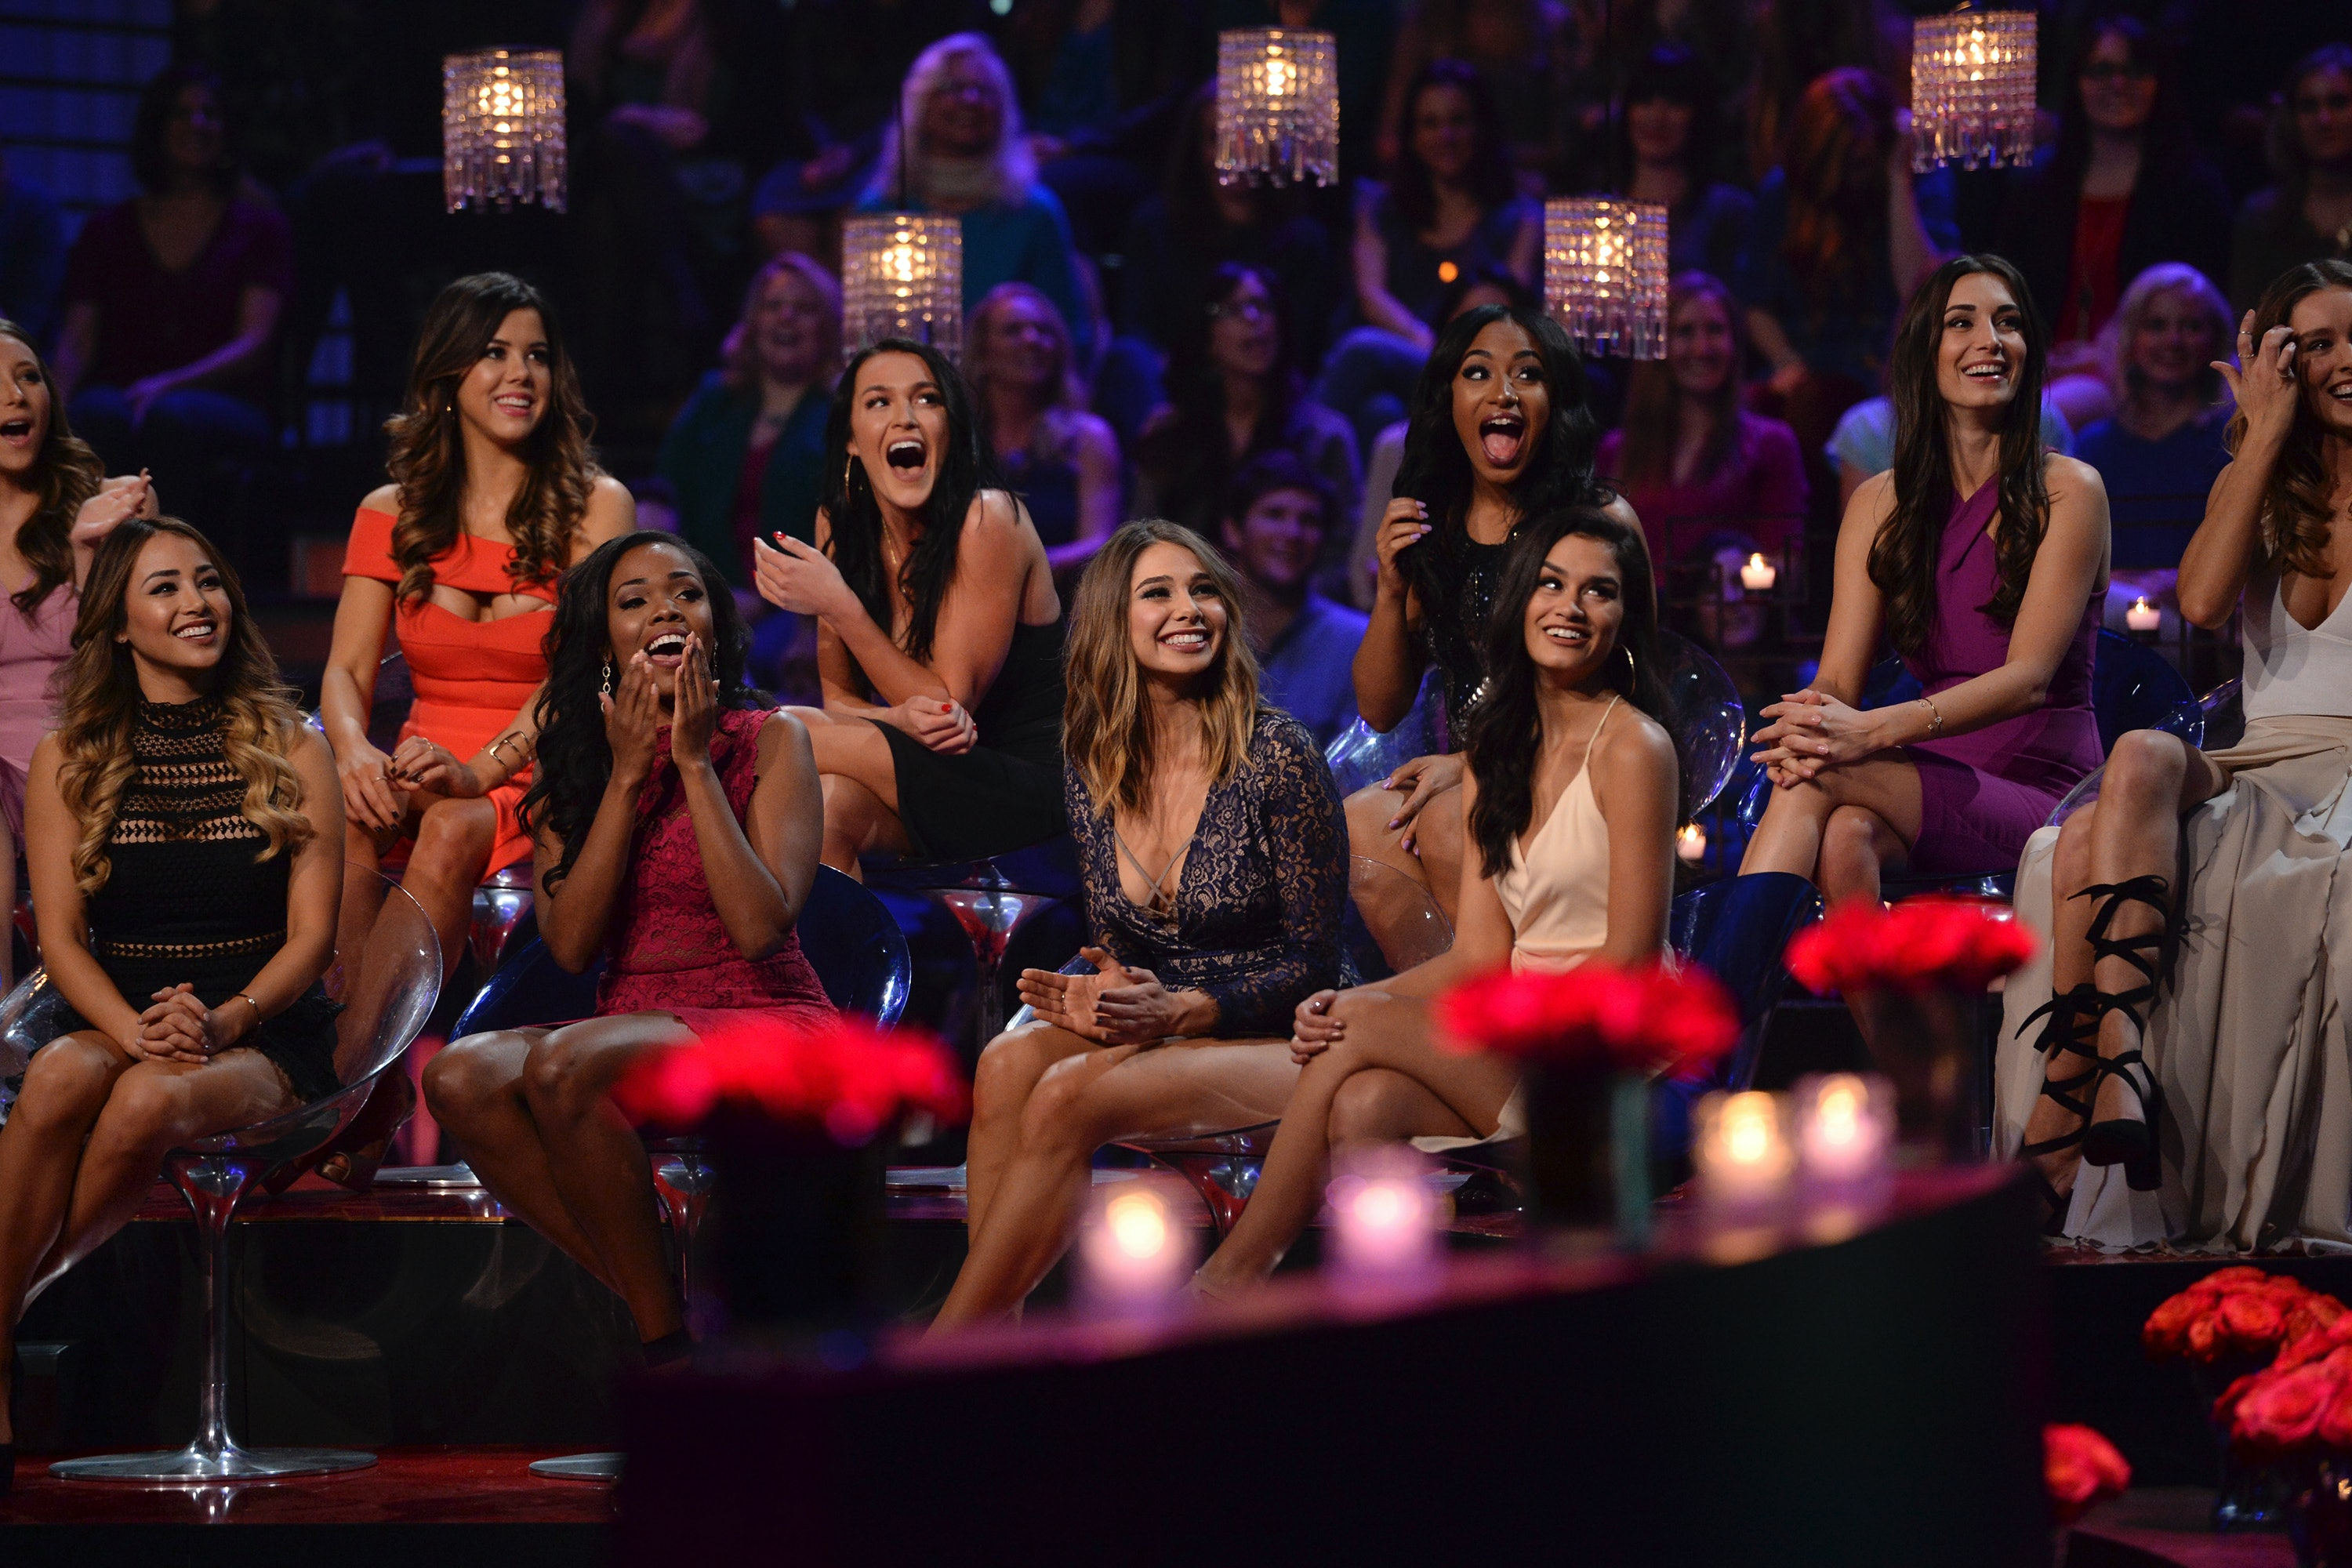 Wunderbar These Nick Viall Contestants Should Be On U0027Bachelor In Paradiseu0027 For A  Second Chance At Love